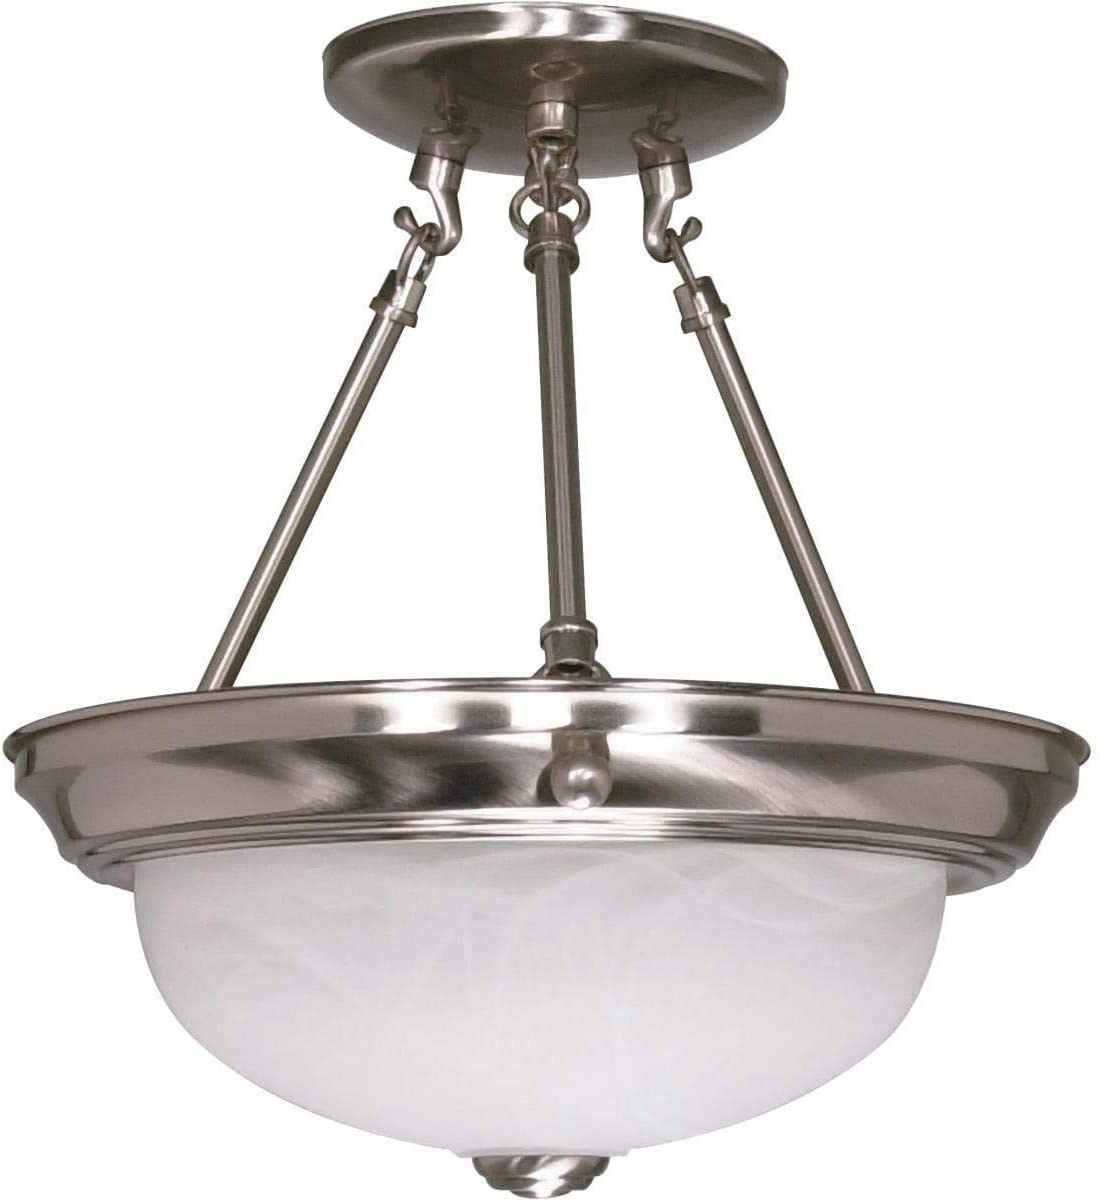 "2 Light 11"" Semi Flush Glass Transitional Steel"